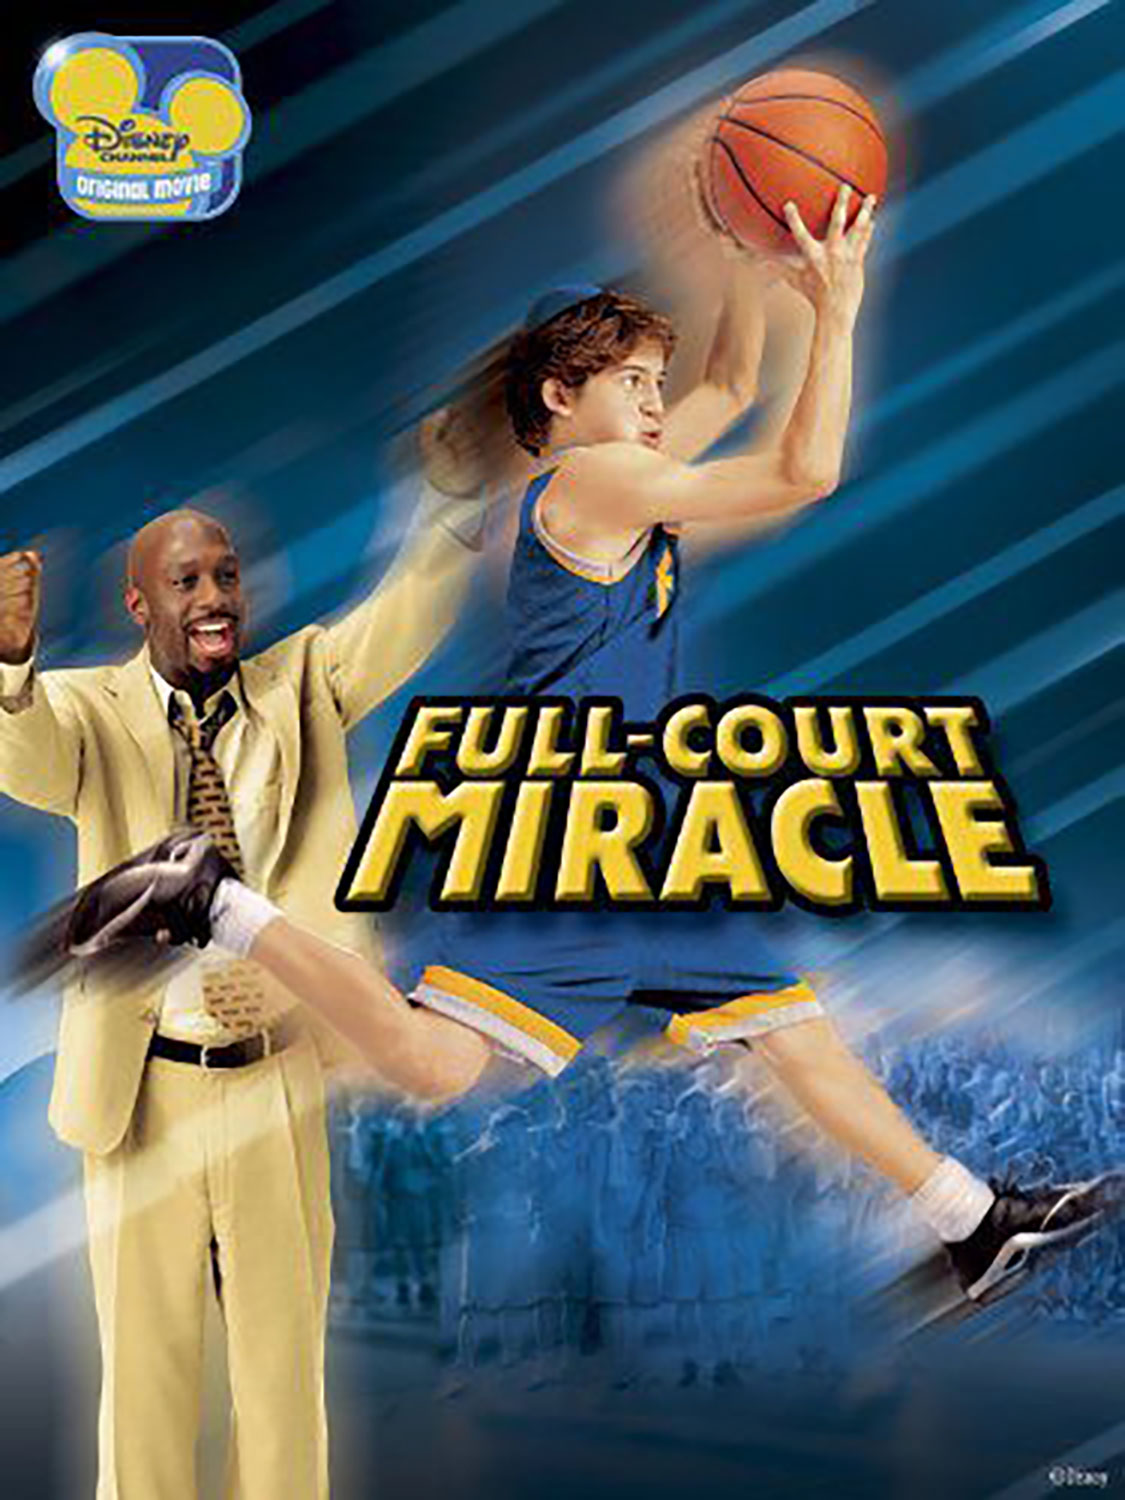 Affiche Poster nous jouer full court miracle disney channel